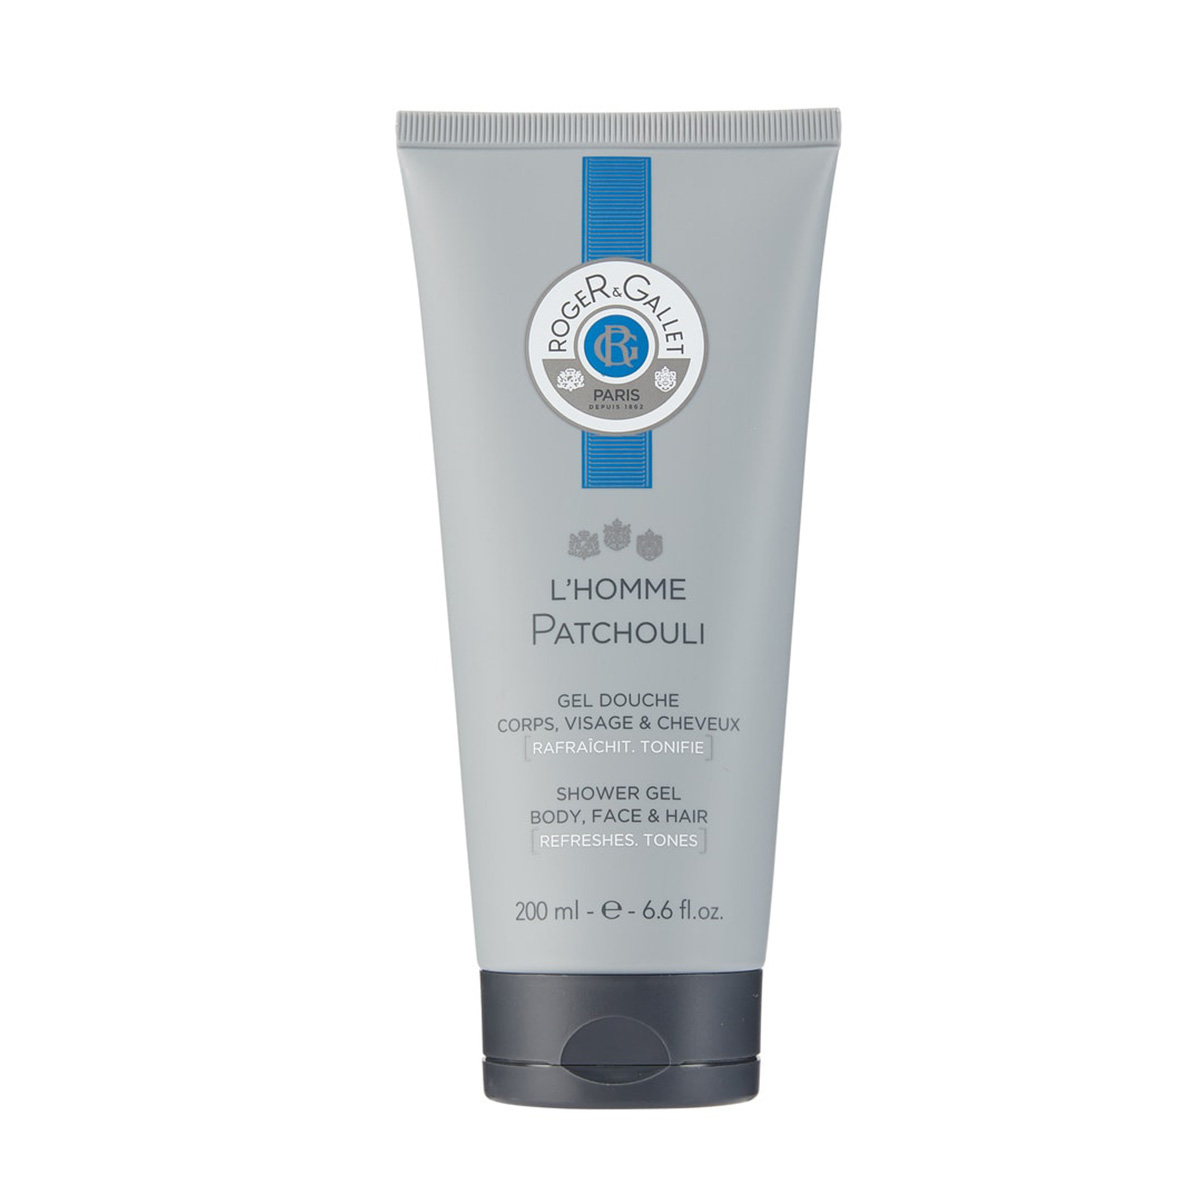 Gel Douche l'Homme Patchouli Roger Gallet - 200ml